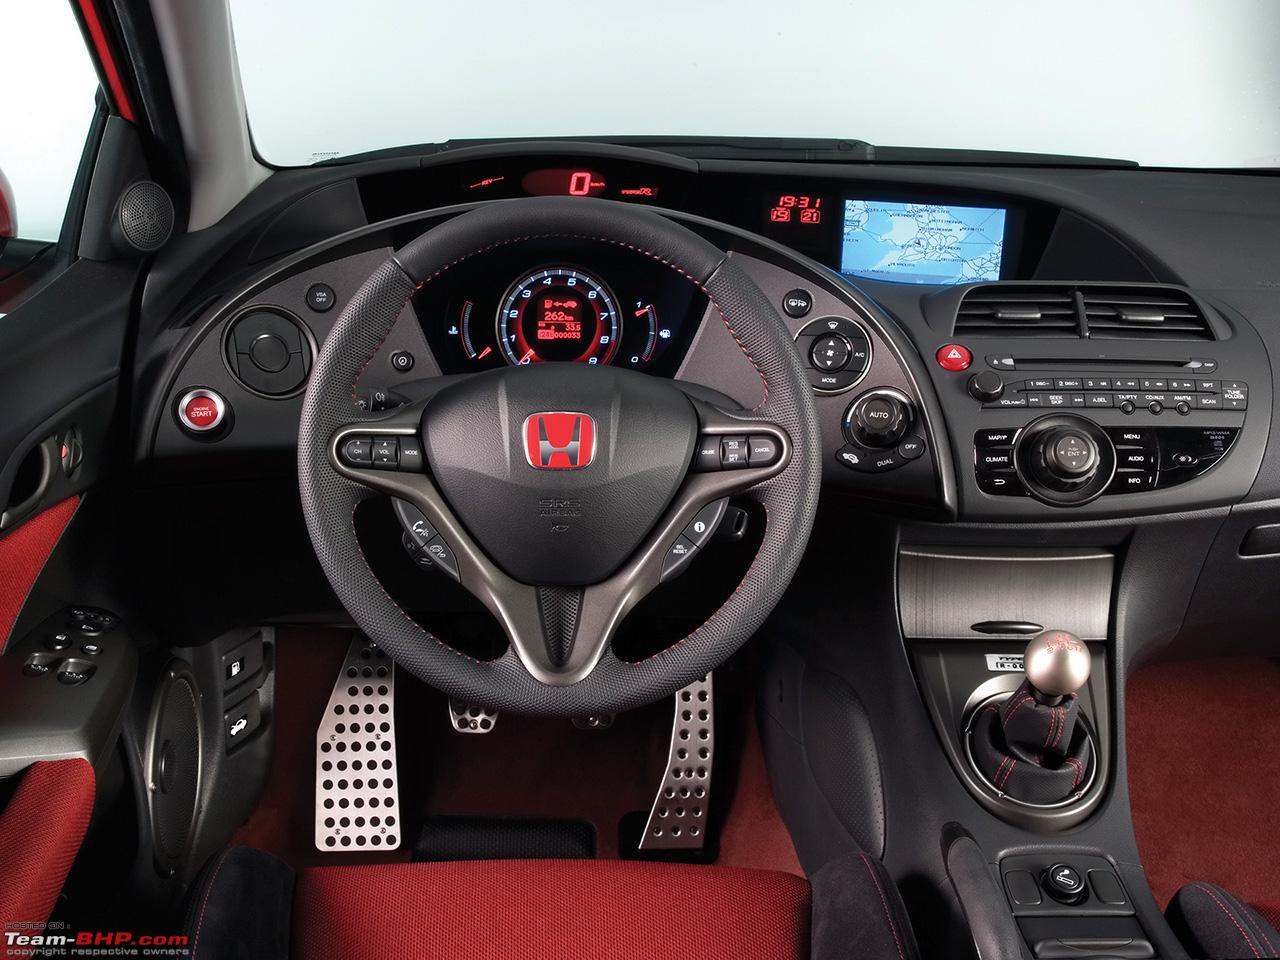 Honda City 2007 Interior